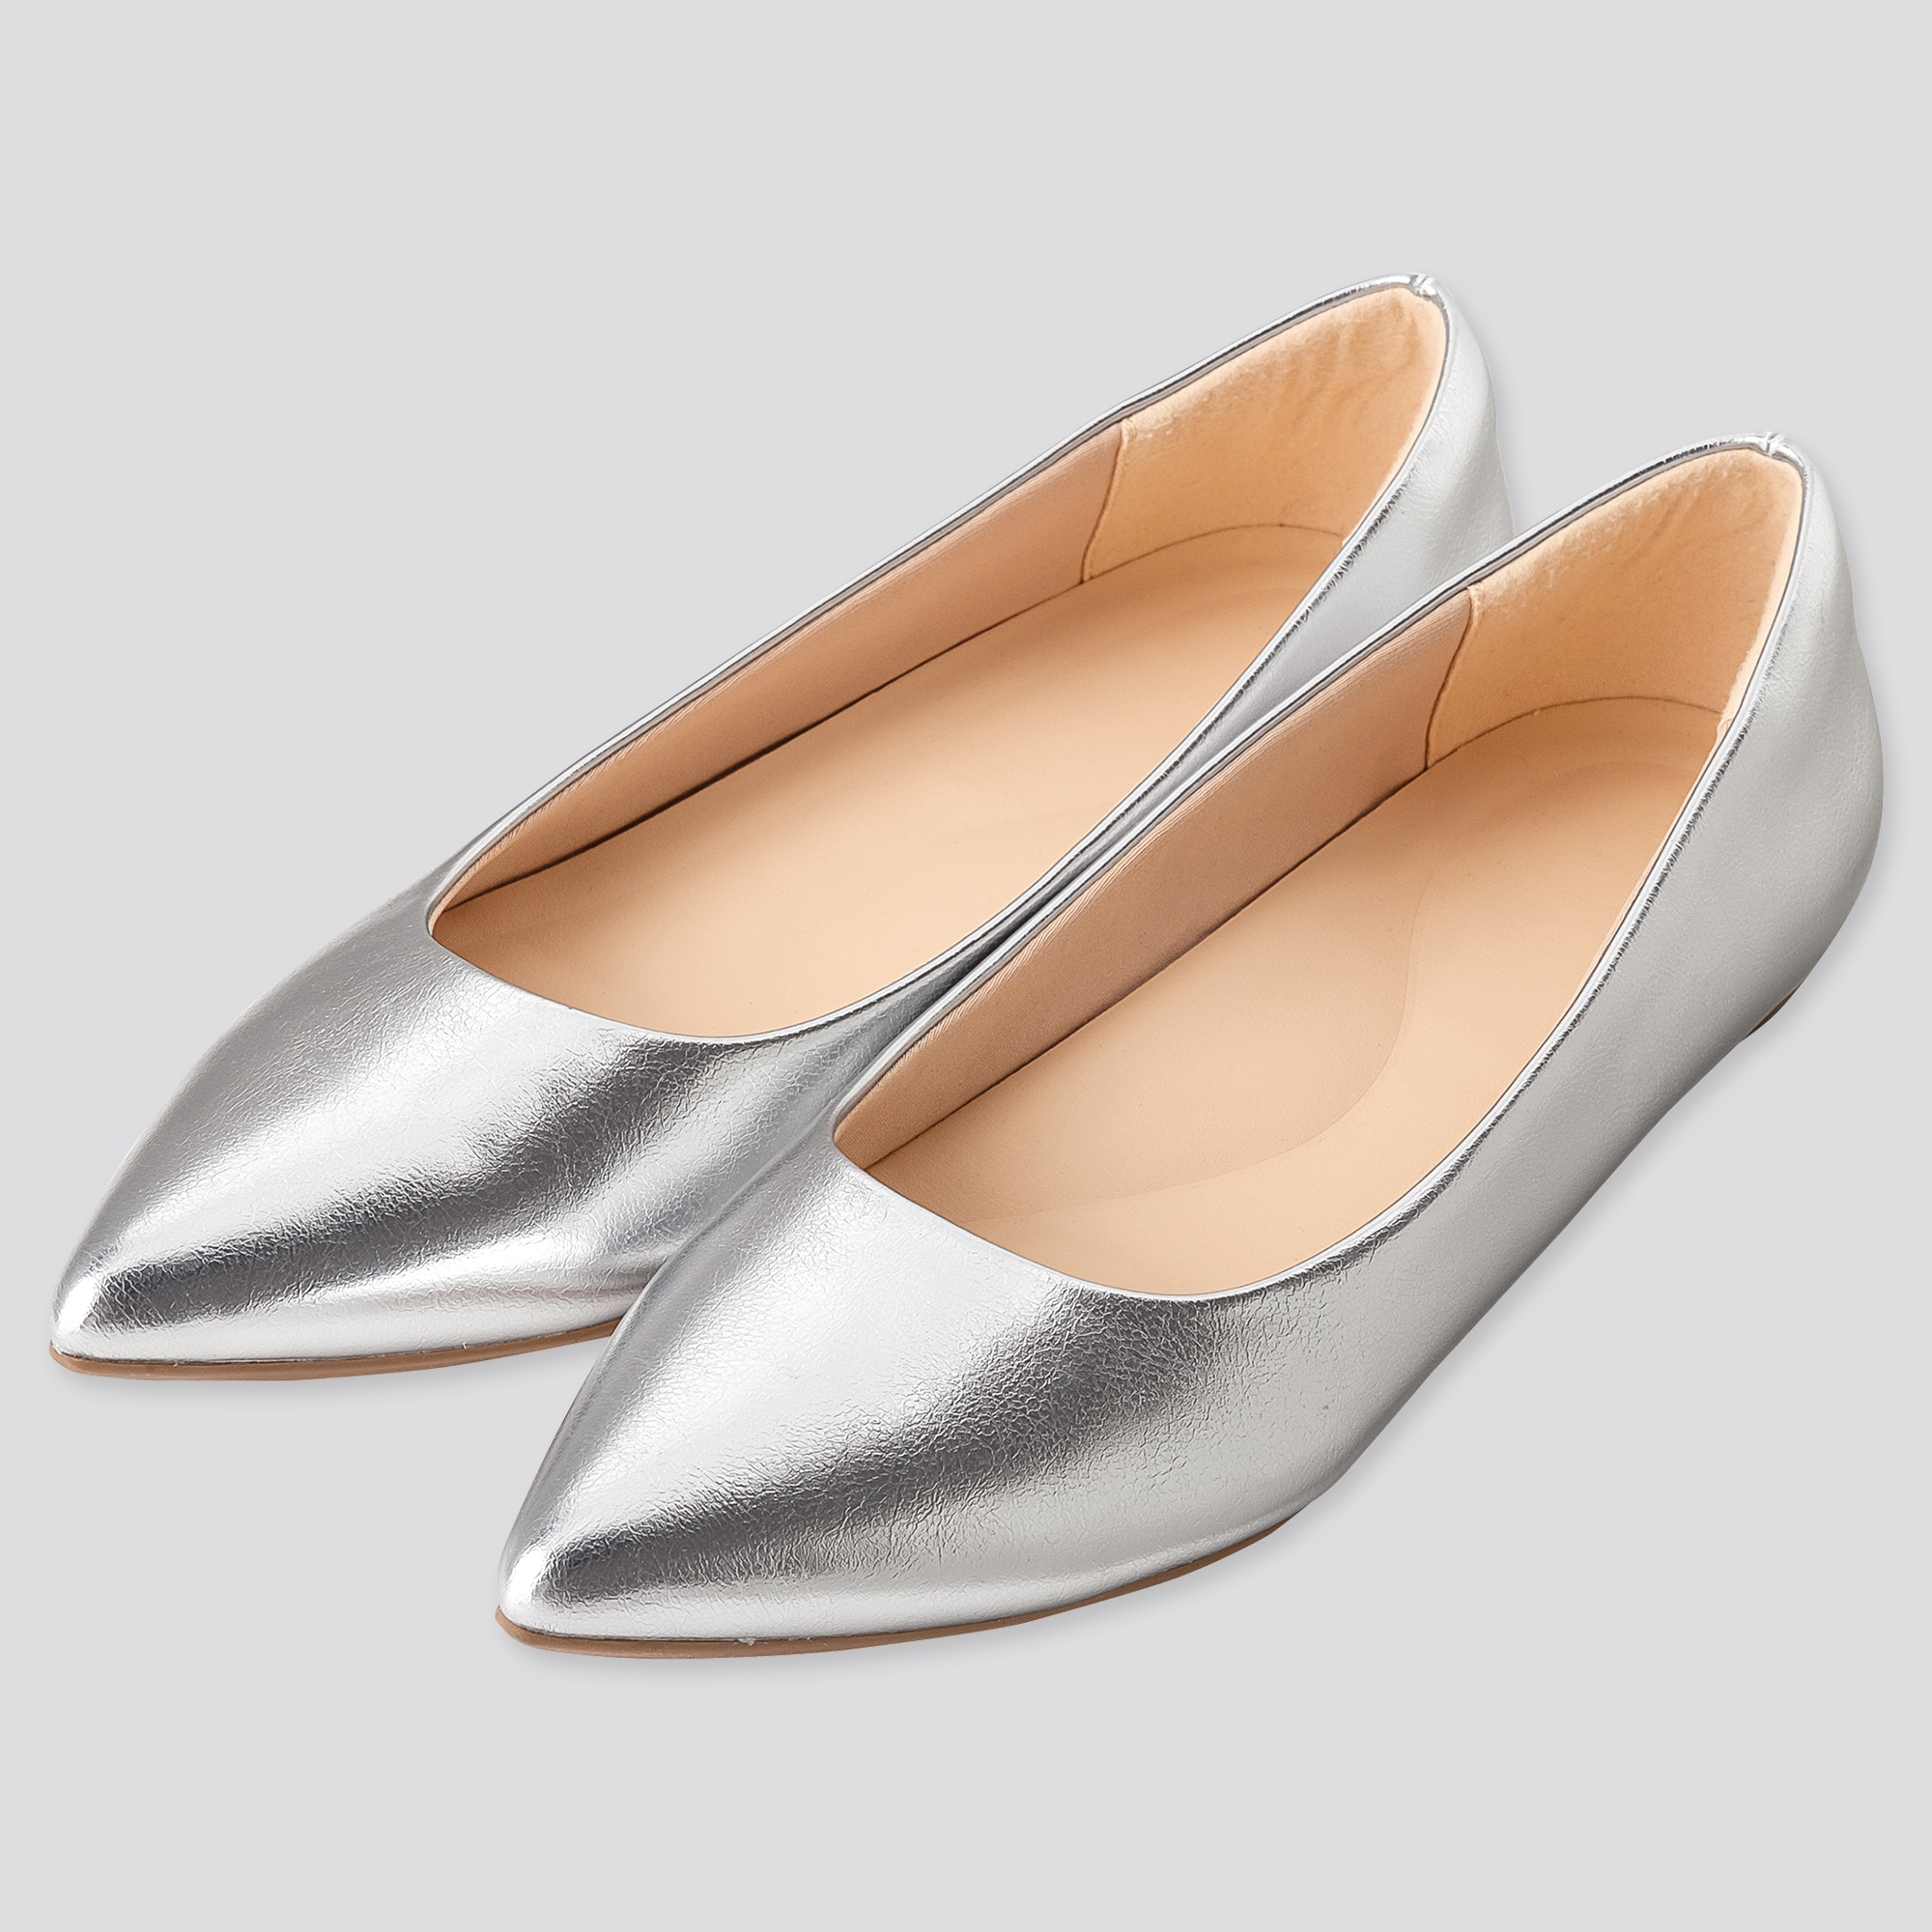 WOMEN COMFORT FEEL POINTED FLAT SHOES